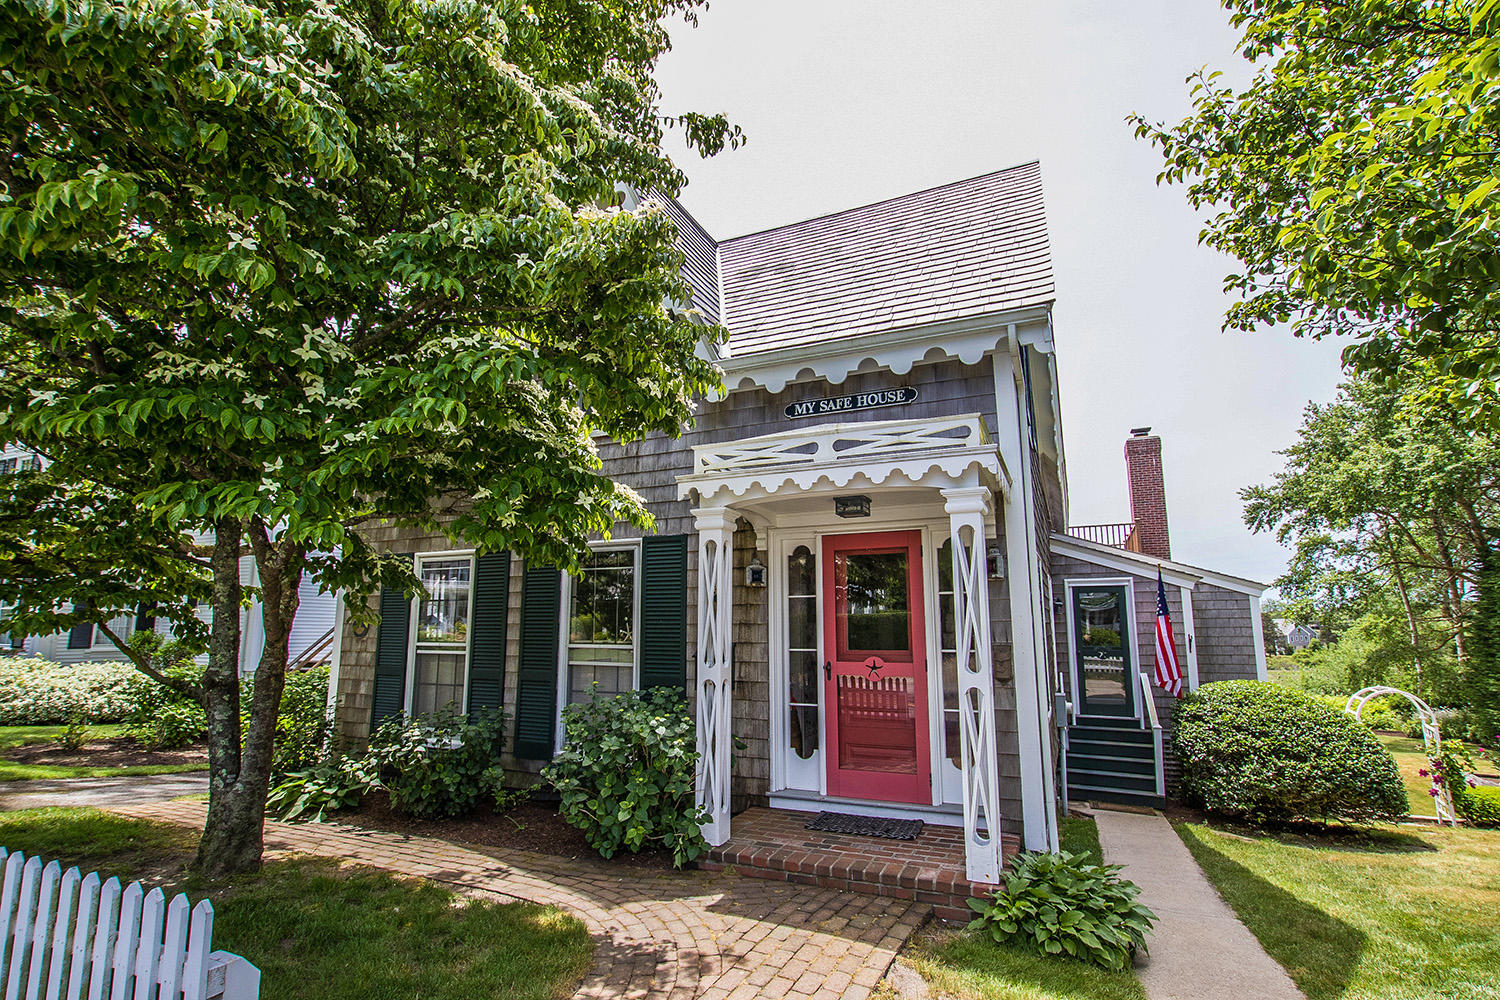 Chatham Real Estate - Cape Cod Antique , 331 Main Street, Chatham MA, 02633   Listed at $2,575,000